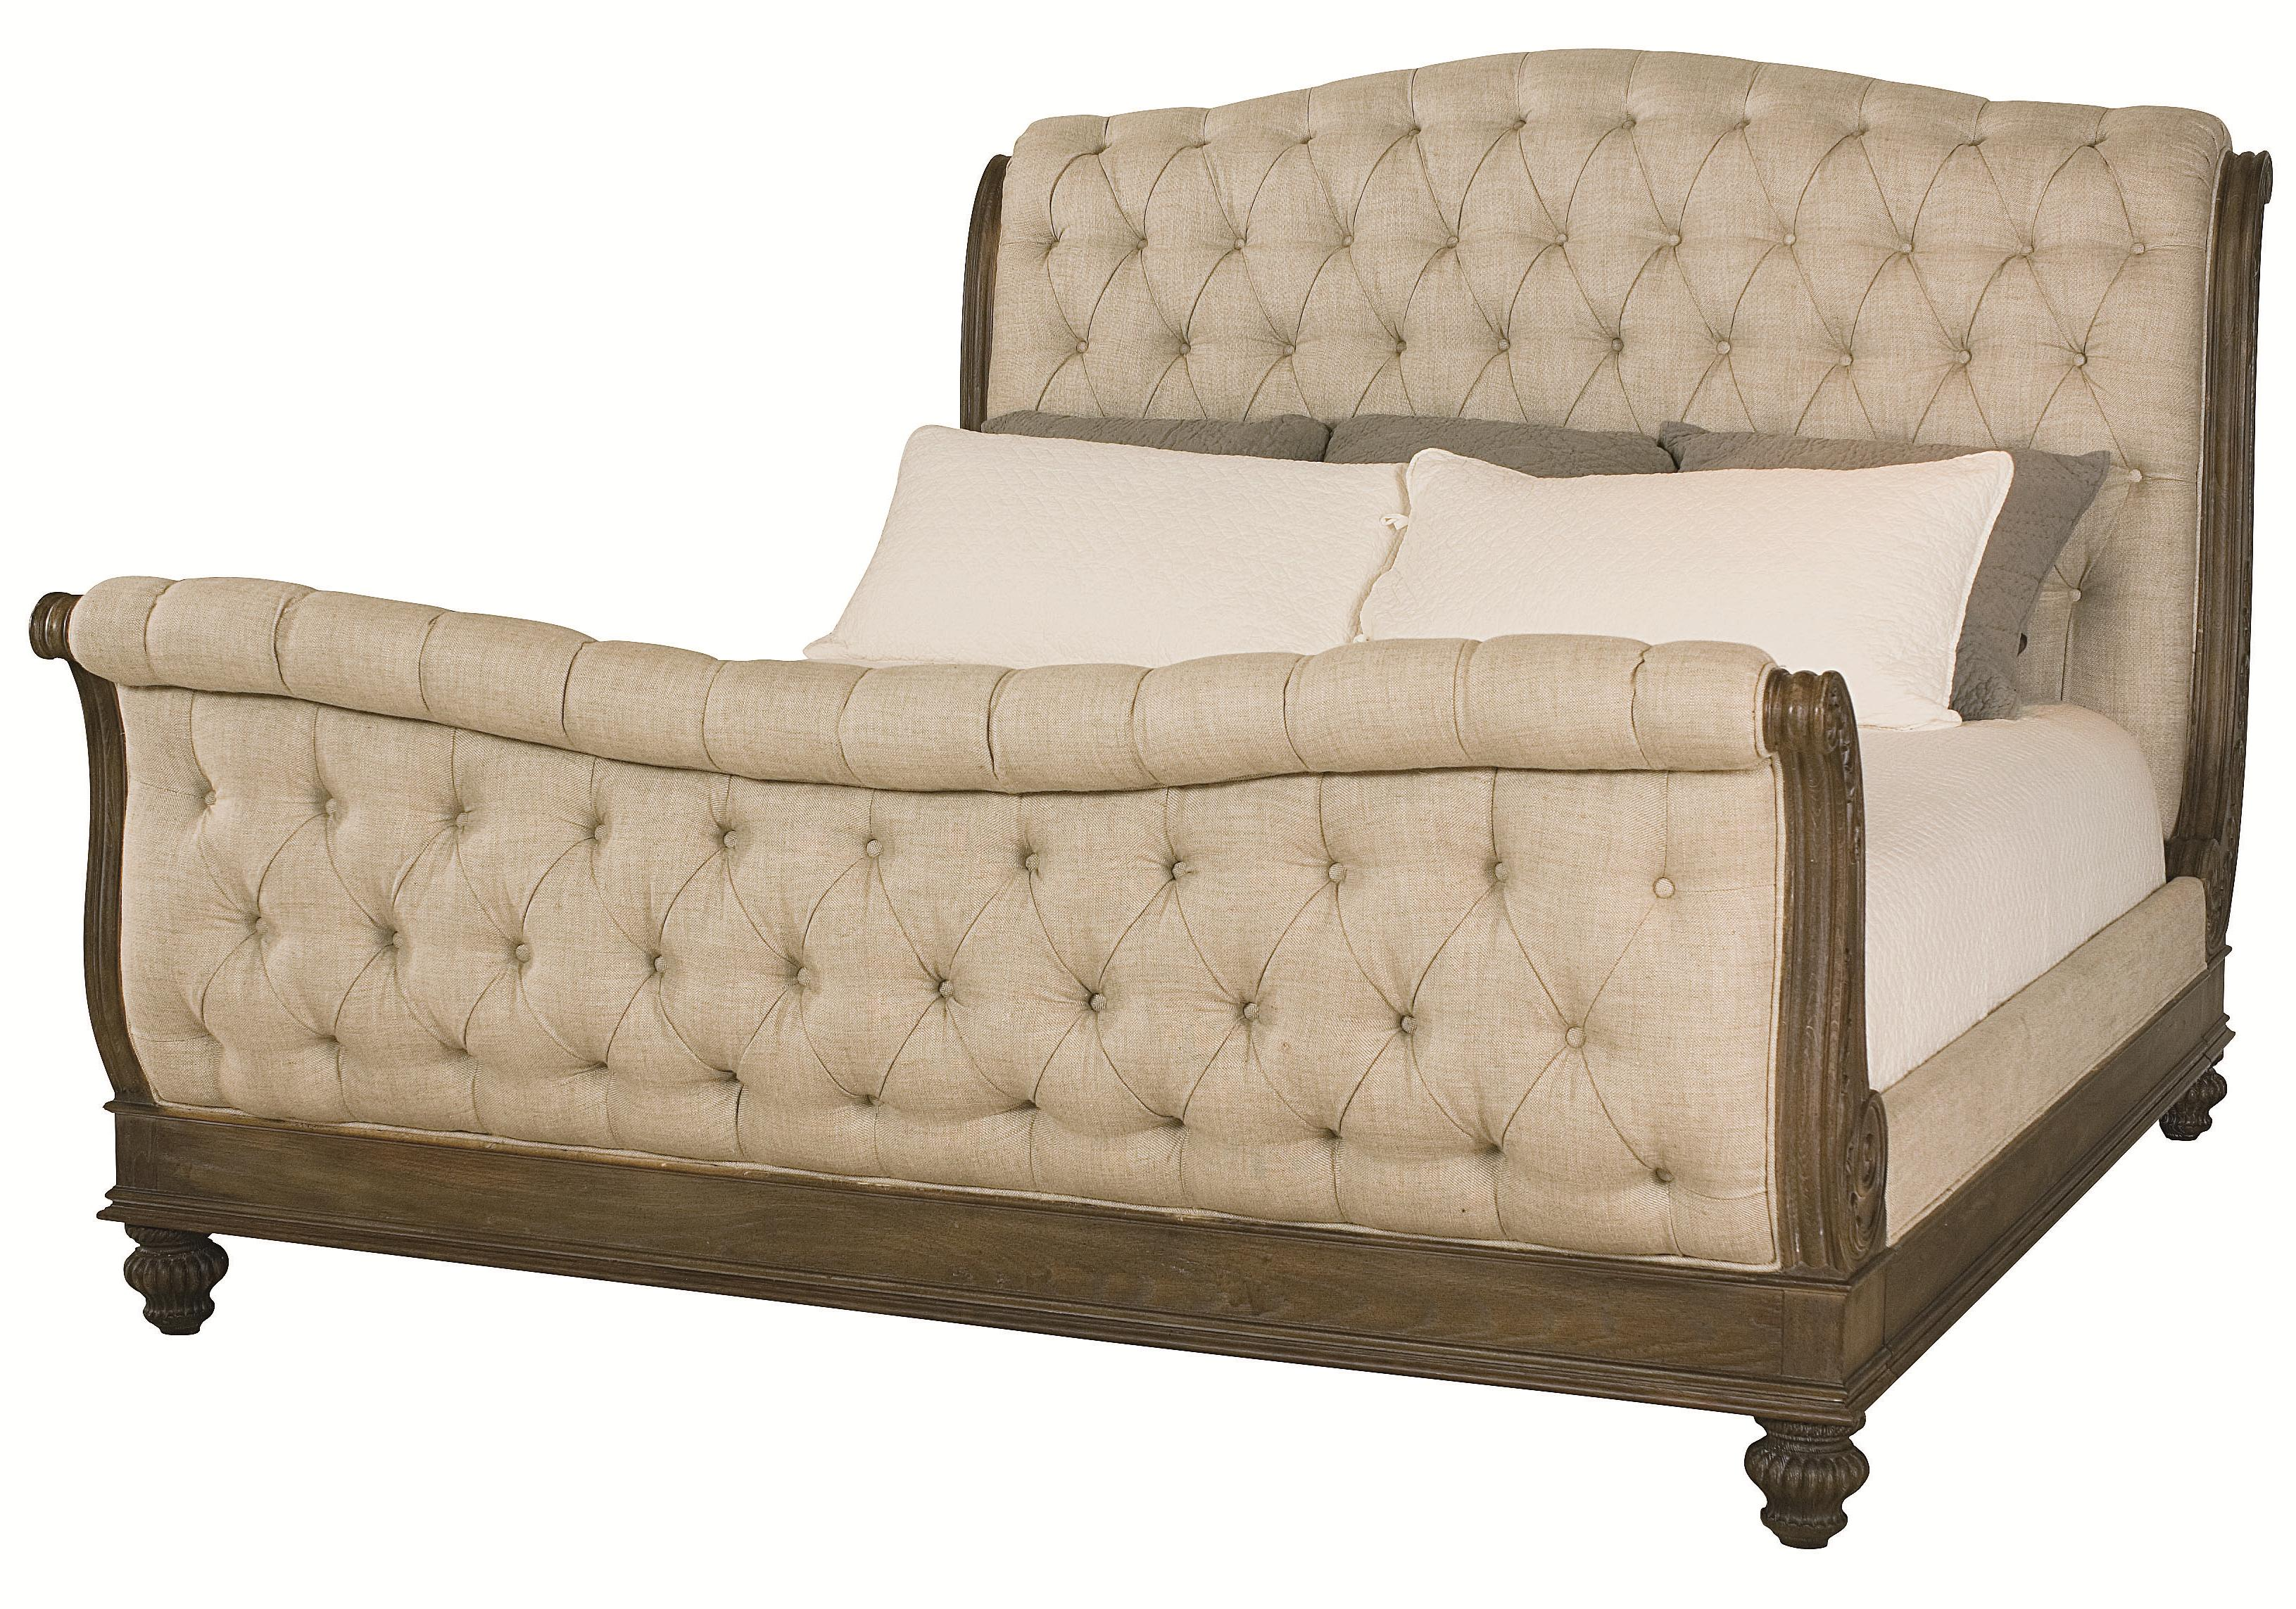 Queen Sleigh Bed With Linen Tufted Headboard And Footboard